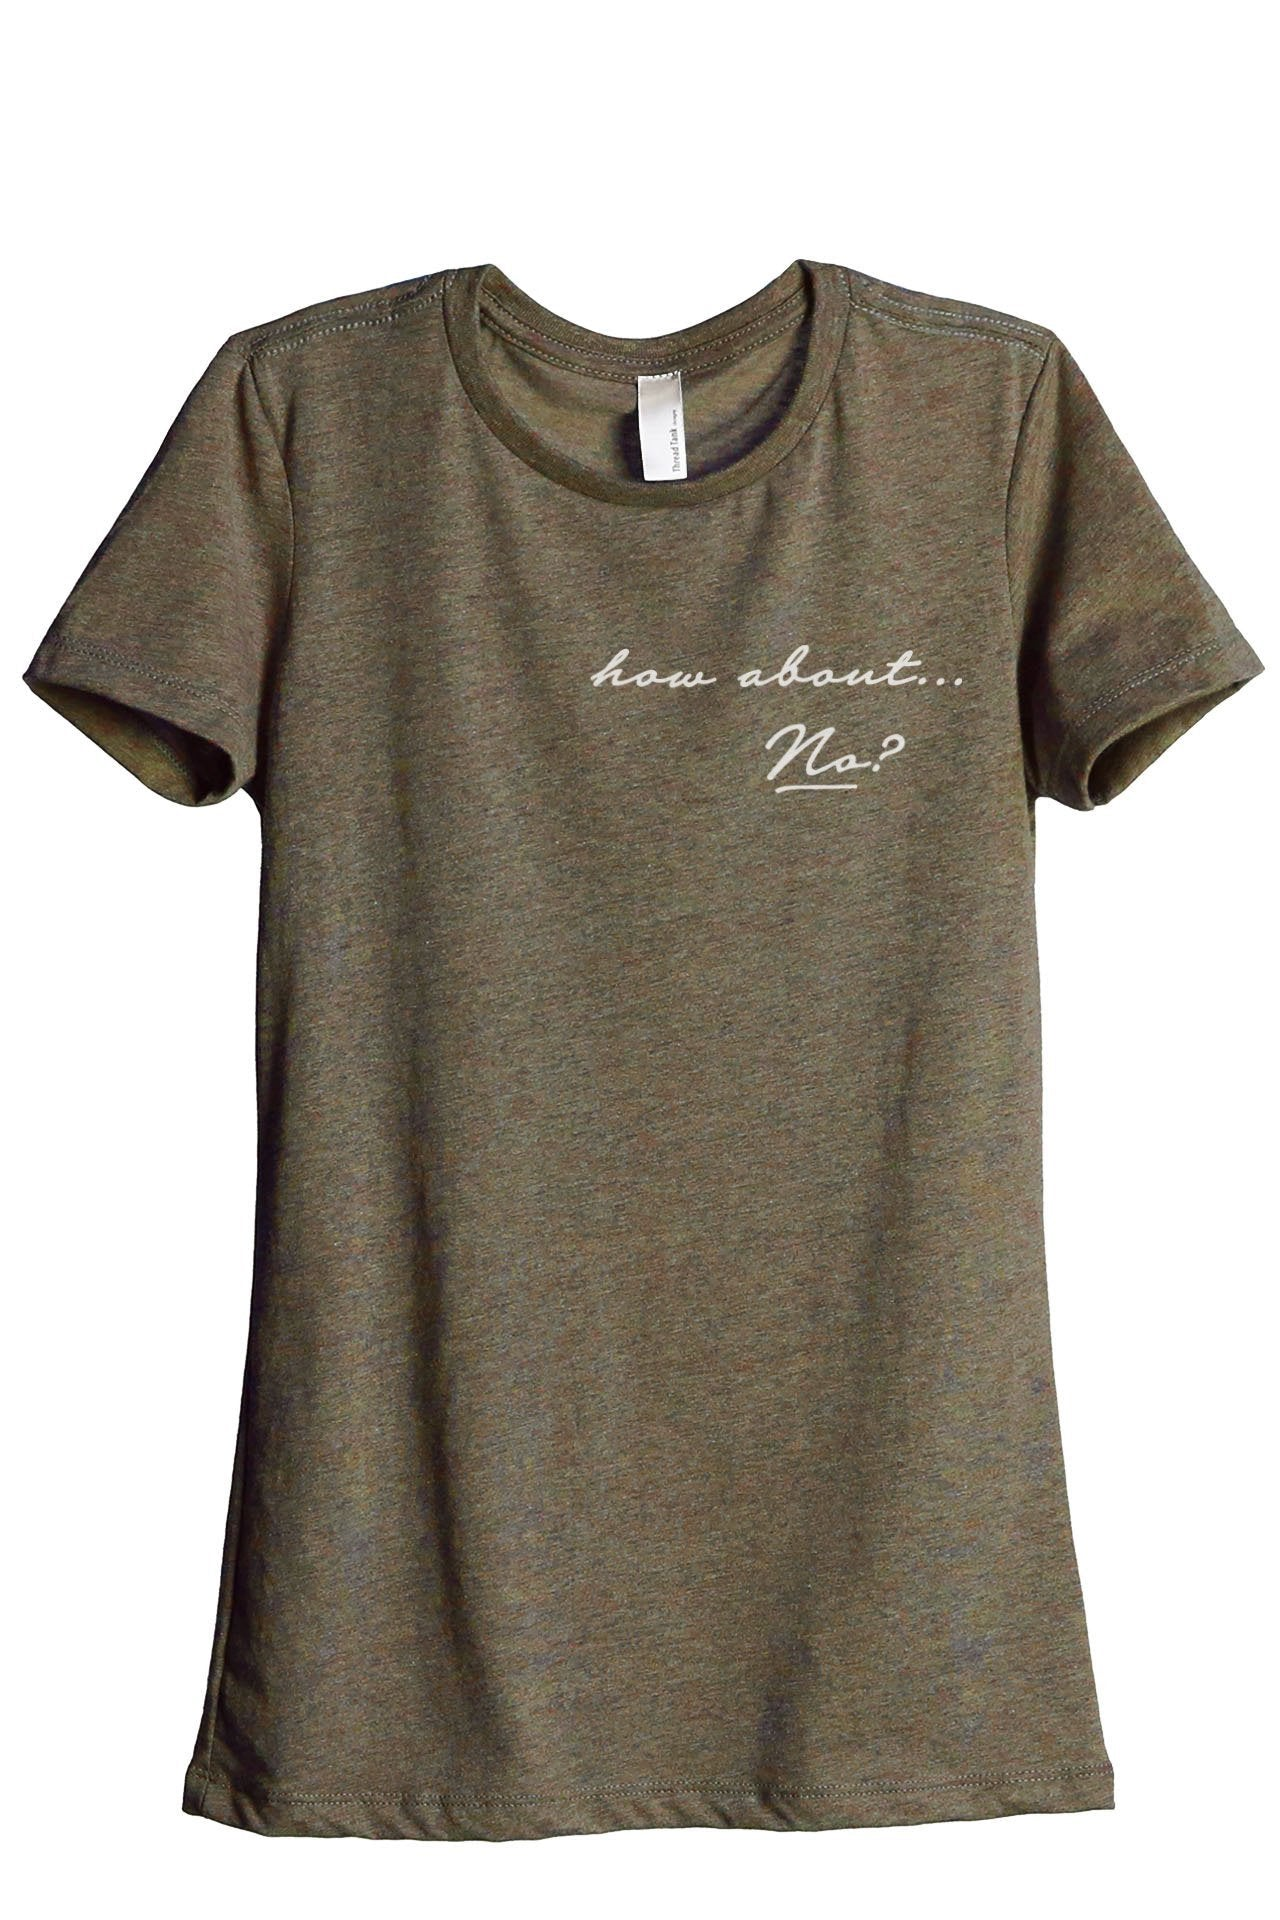 How About No Women's Relaxed Crewneck T-Shirt Top Tee Heather Sage